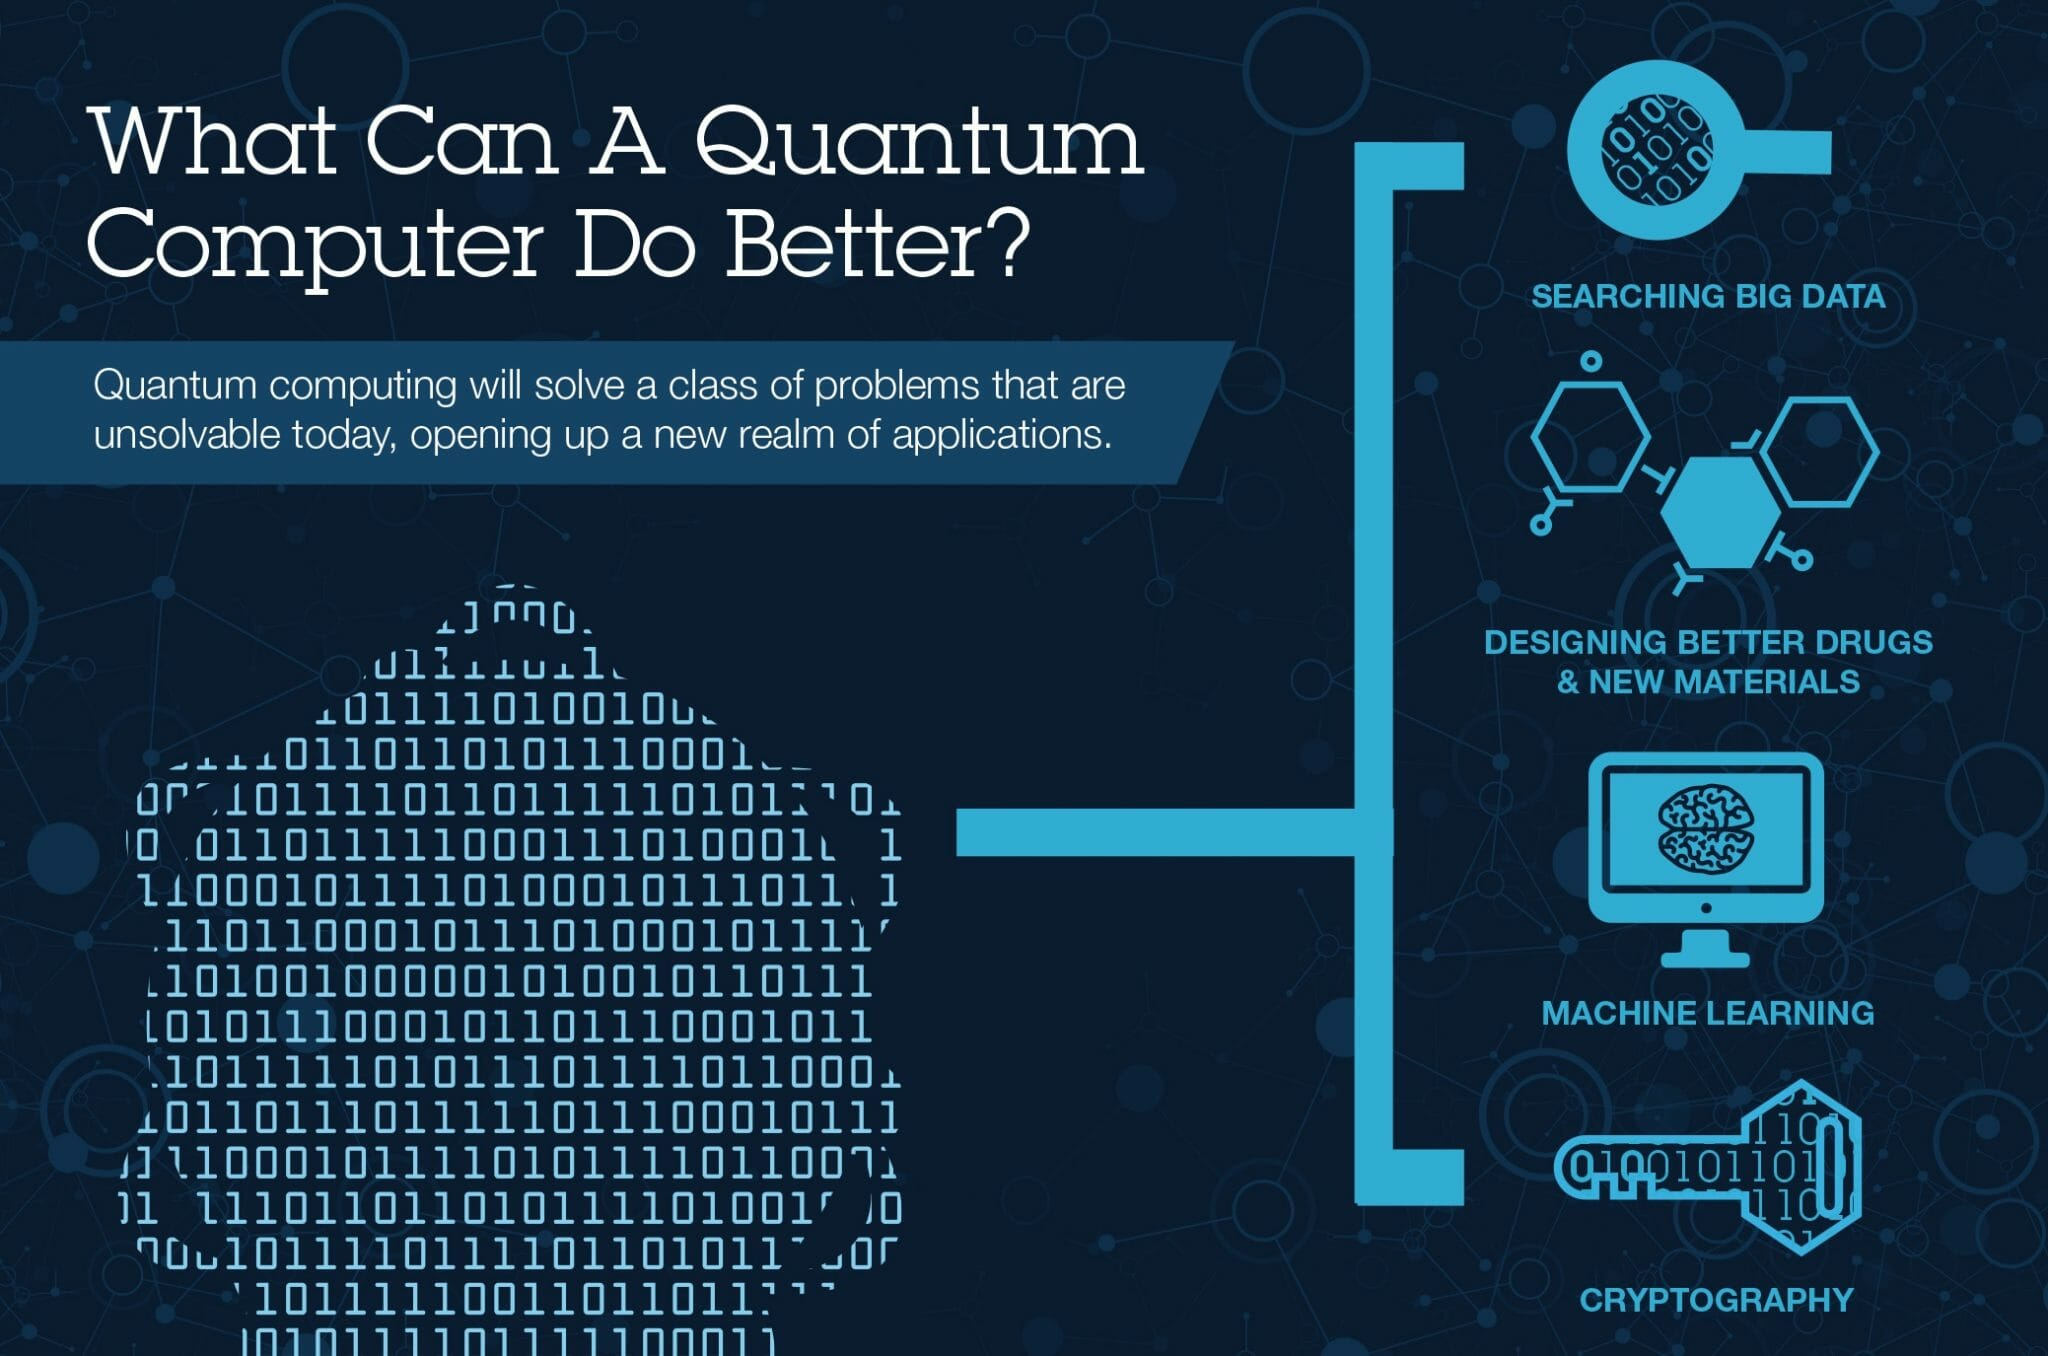 quantum computing uses